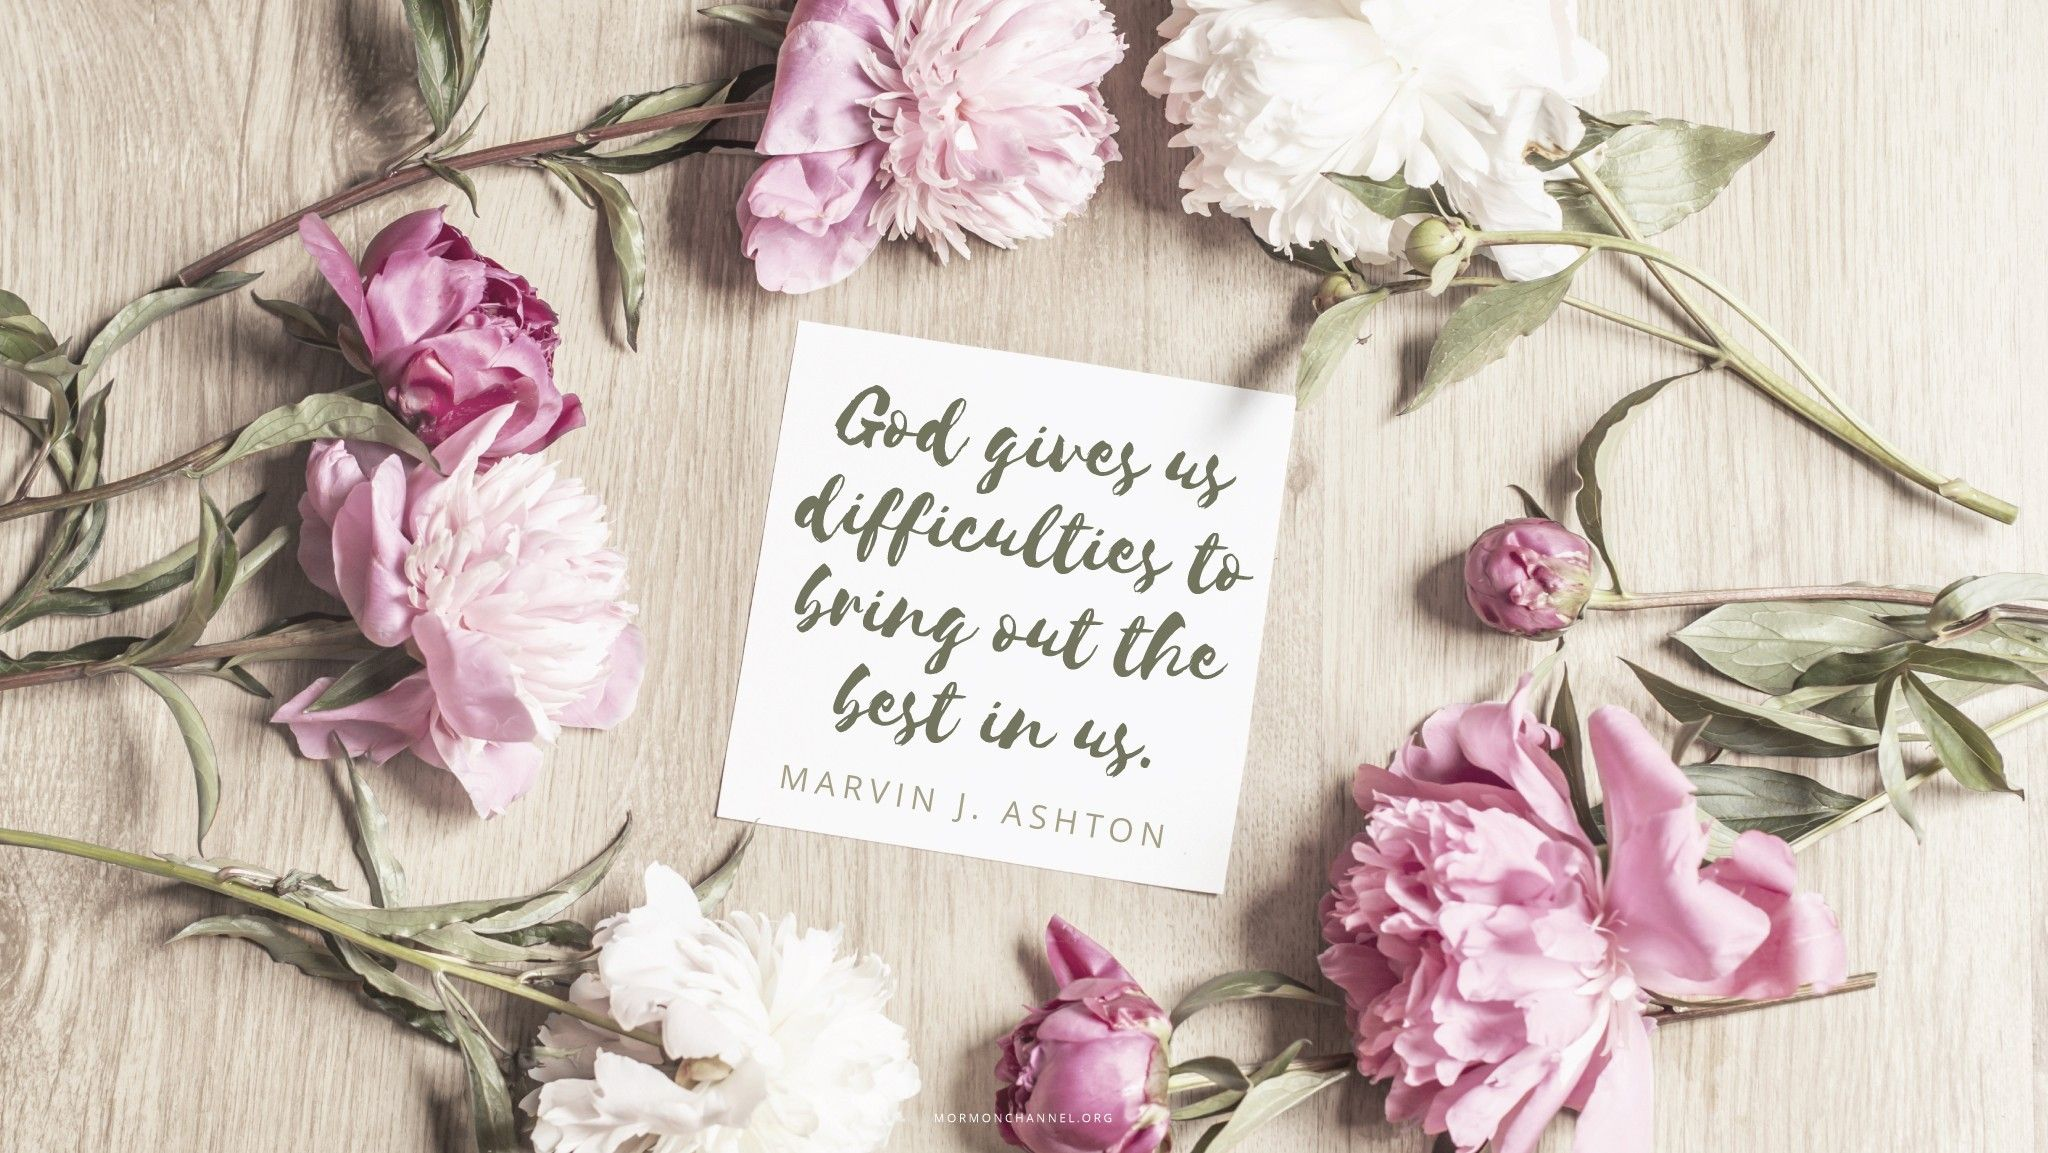 """""""God gives us difficulties to bring out the best in us.""""—Elder Marvin J. Ashton, """"A Pattern in All Things"""""""